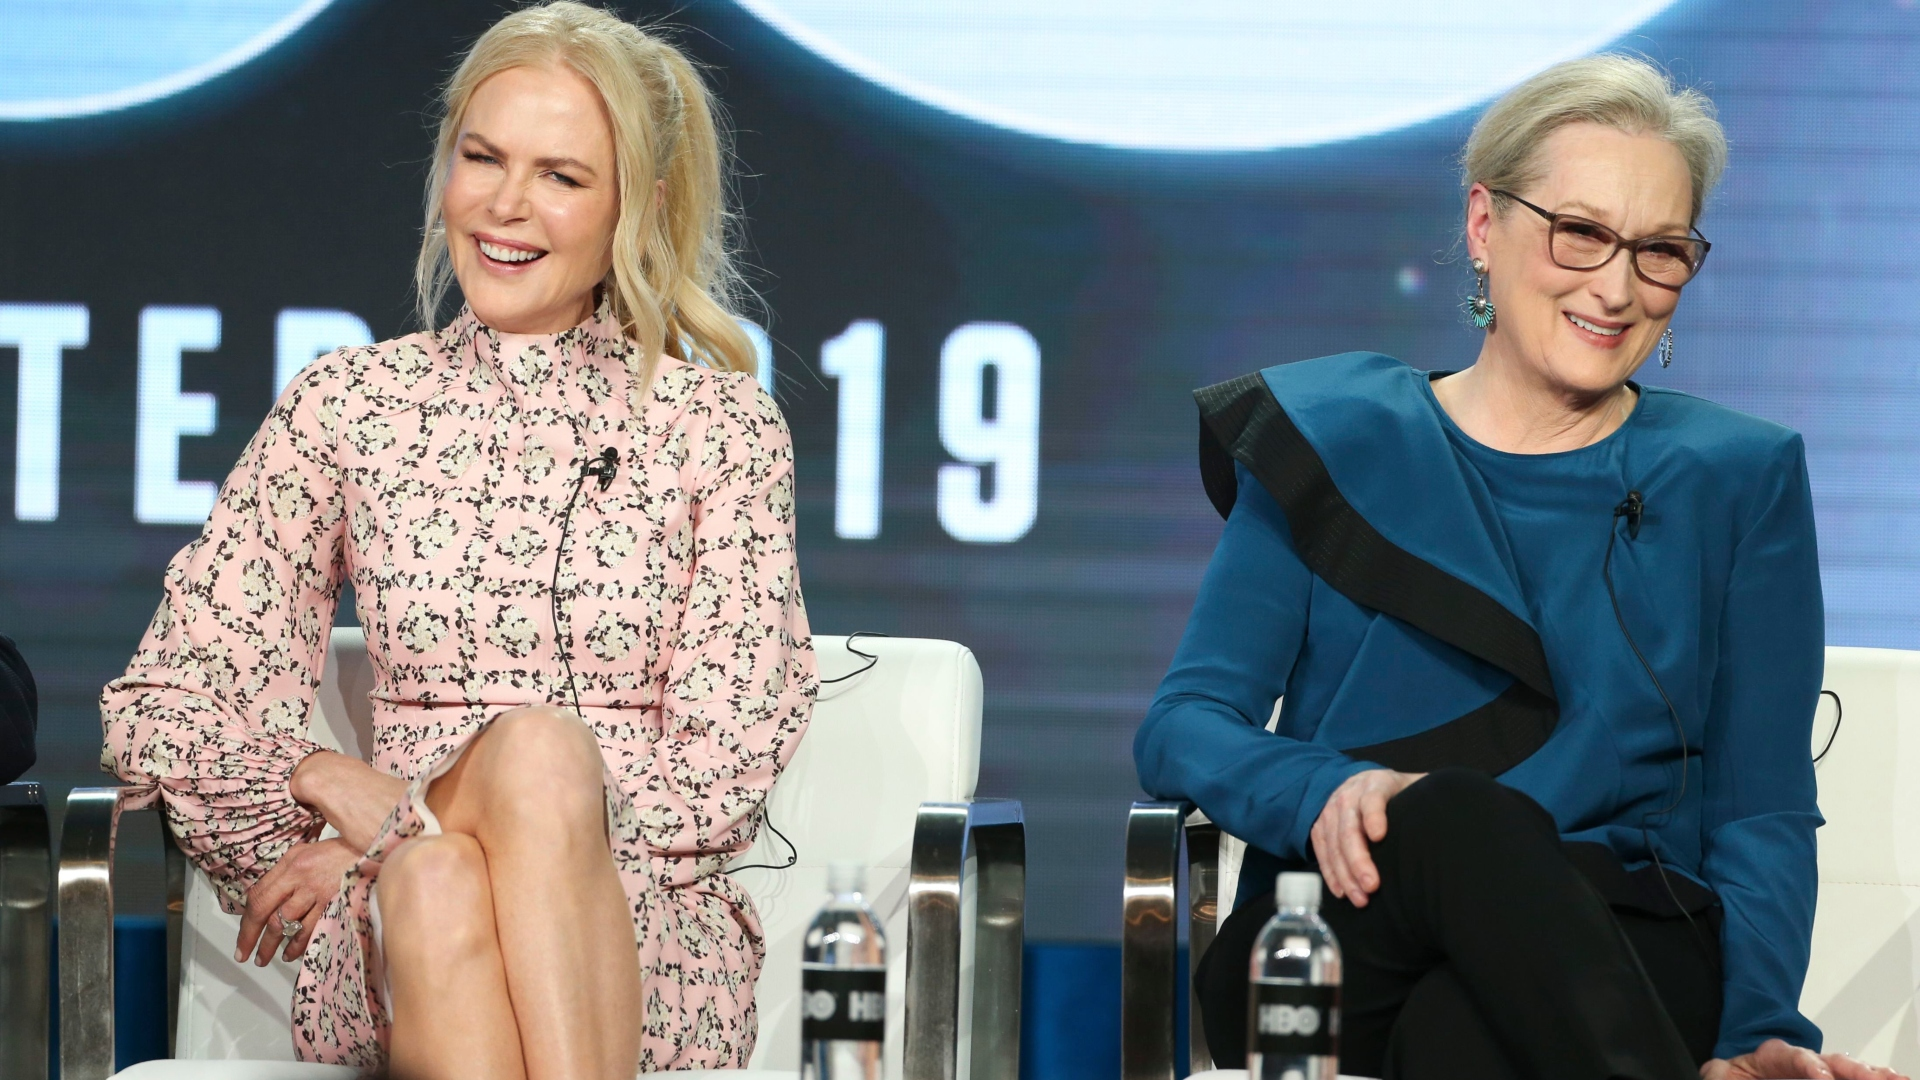 Nicole Kidman Shares Details About New Movie With Meryl Streep